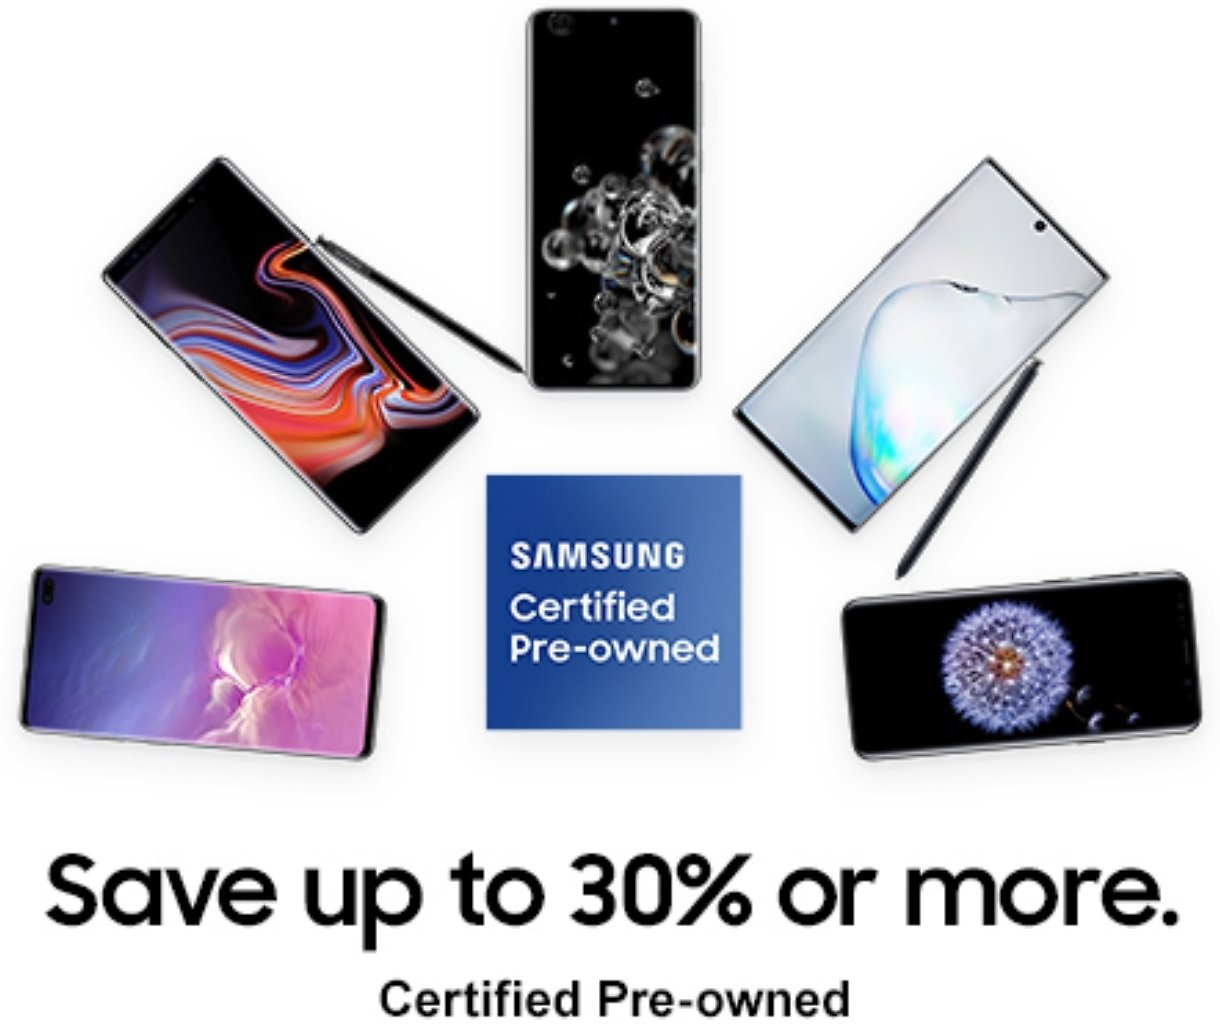 Save Up to 30% Or More On Certified Phones - Samsung